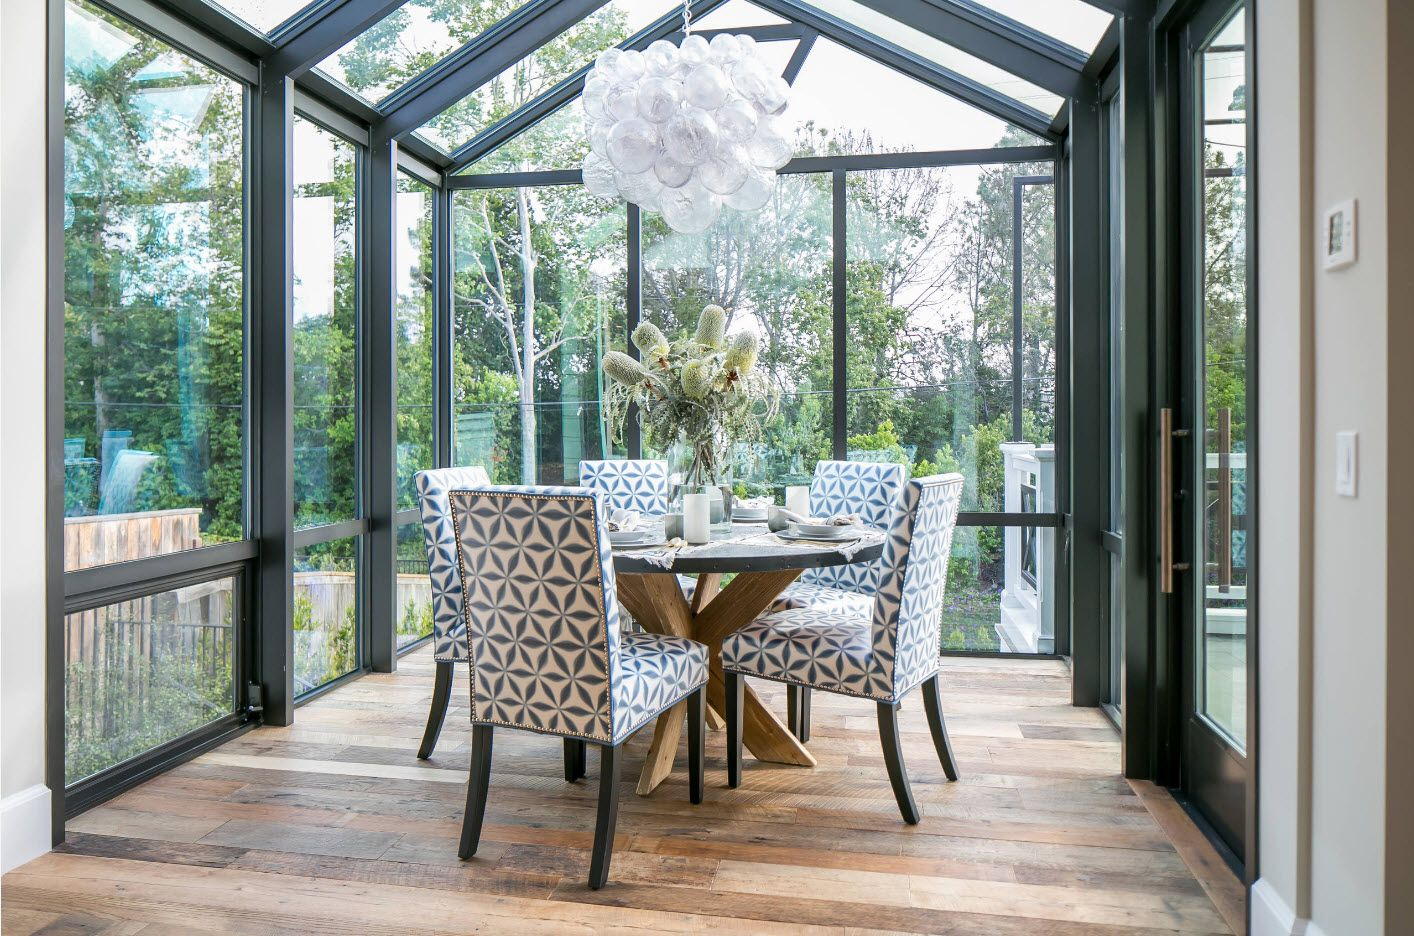 Open glazed veranda at the private house with dining area